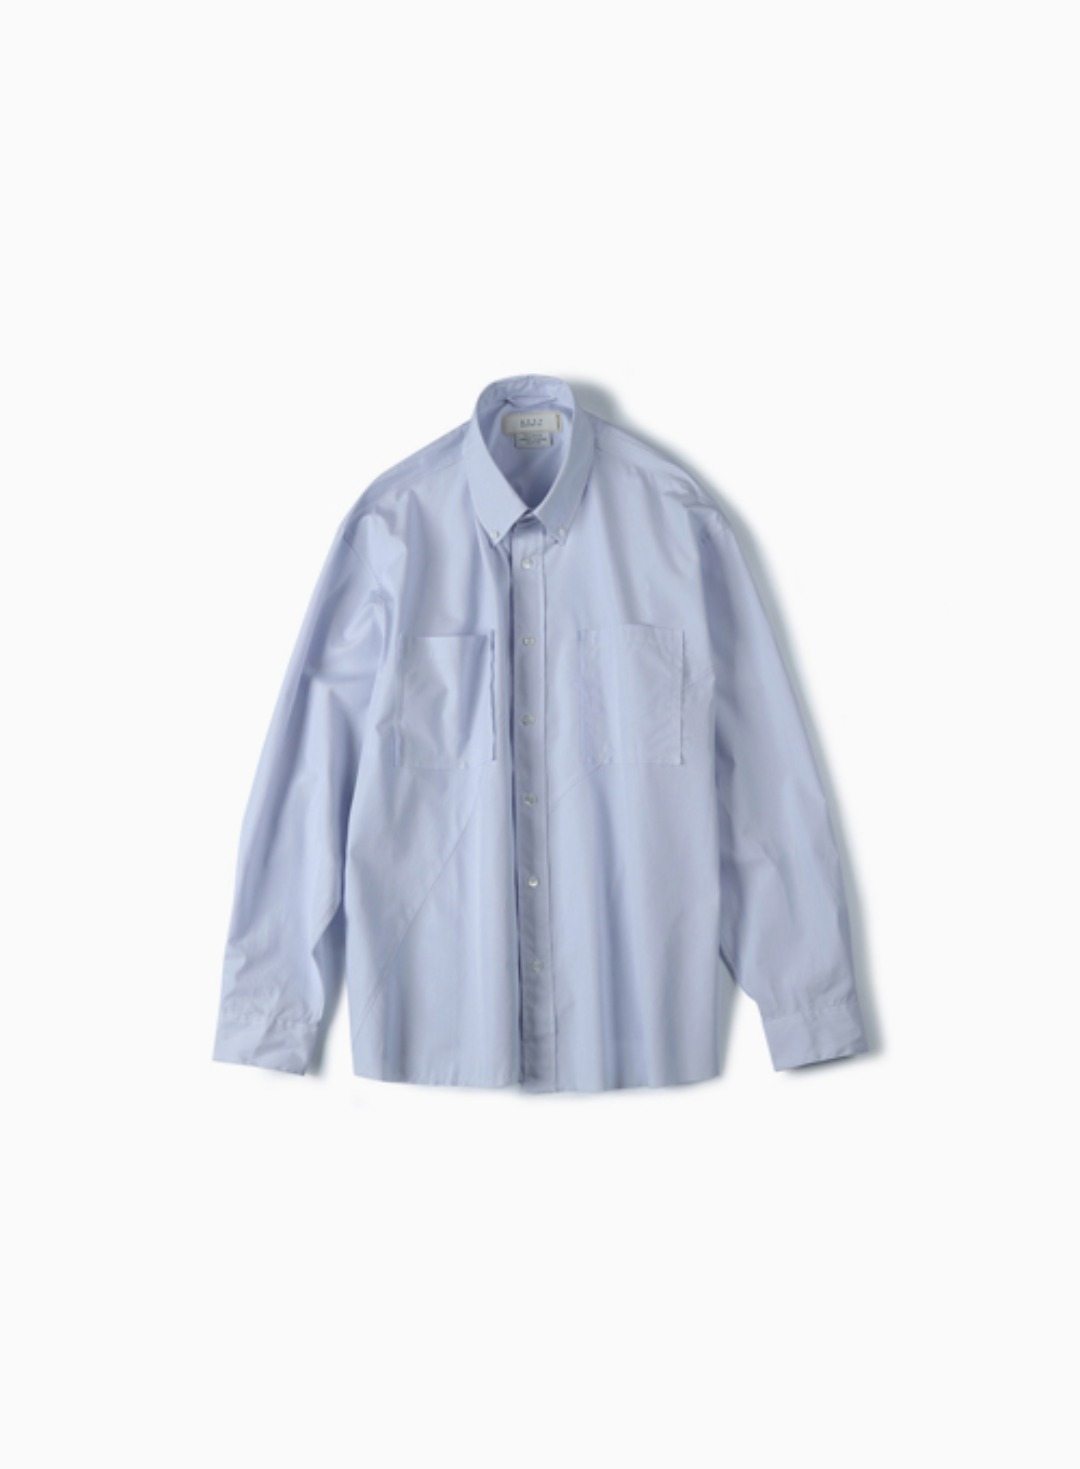 CUT OFF TWIST OVER SHIRT (BLUE STRIPE)